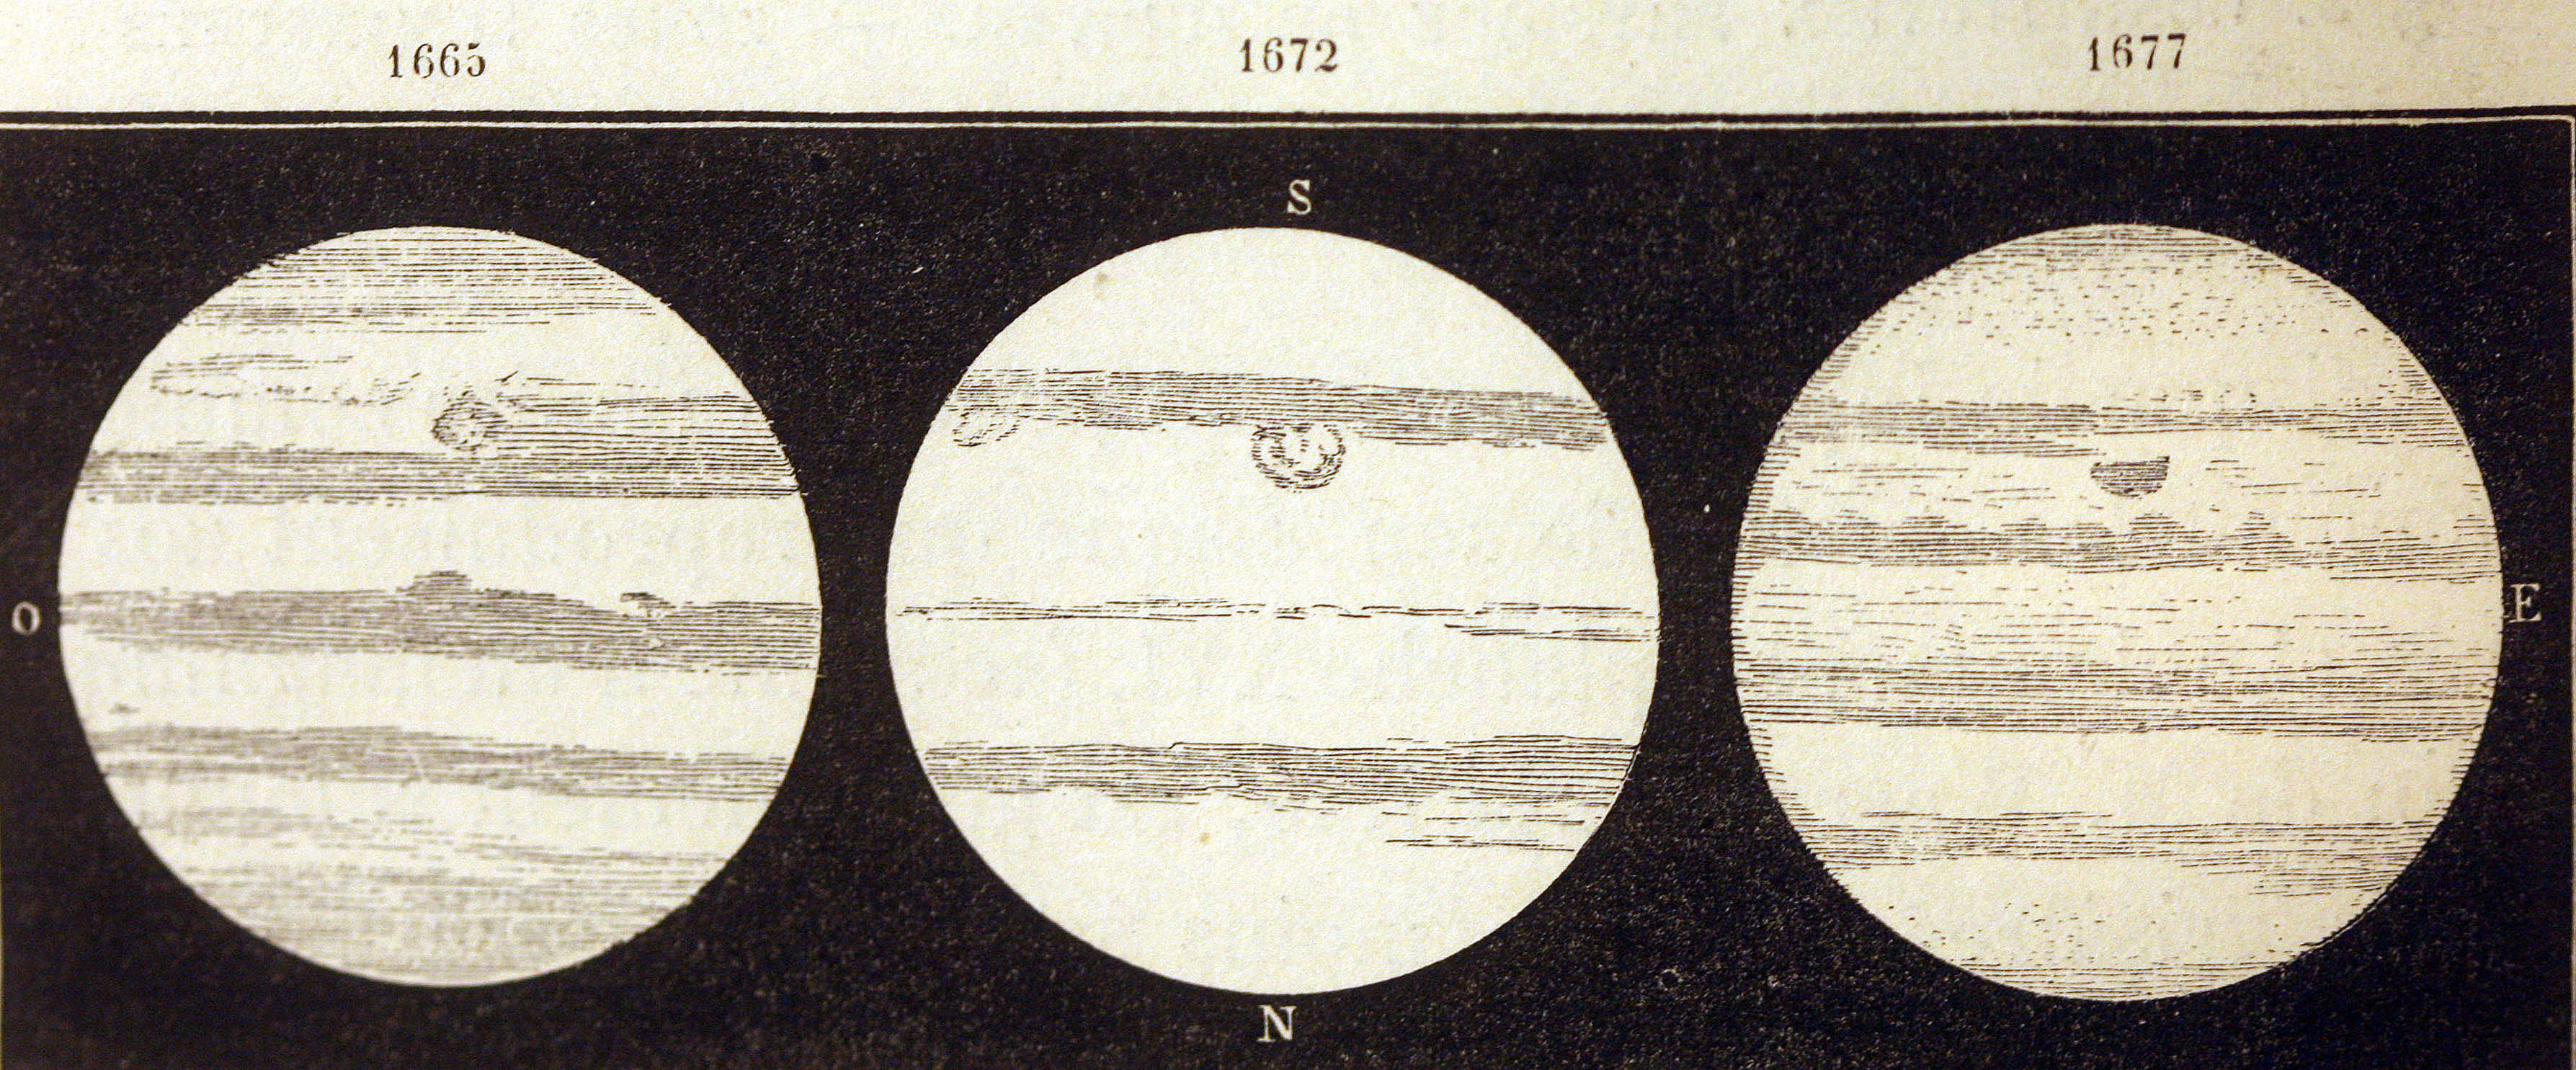 3575x1485 Will Jupiter's Great Red Spot Turn Into A Wee Red Dot